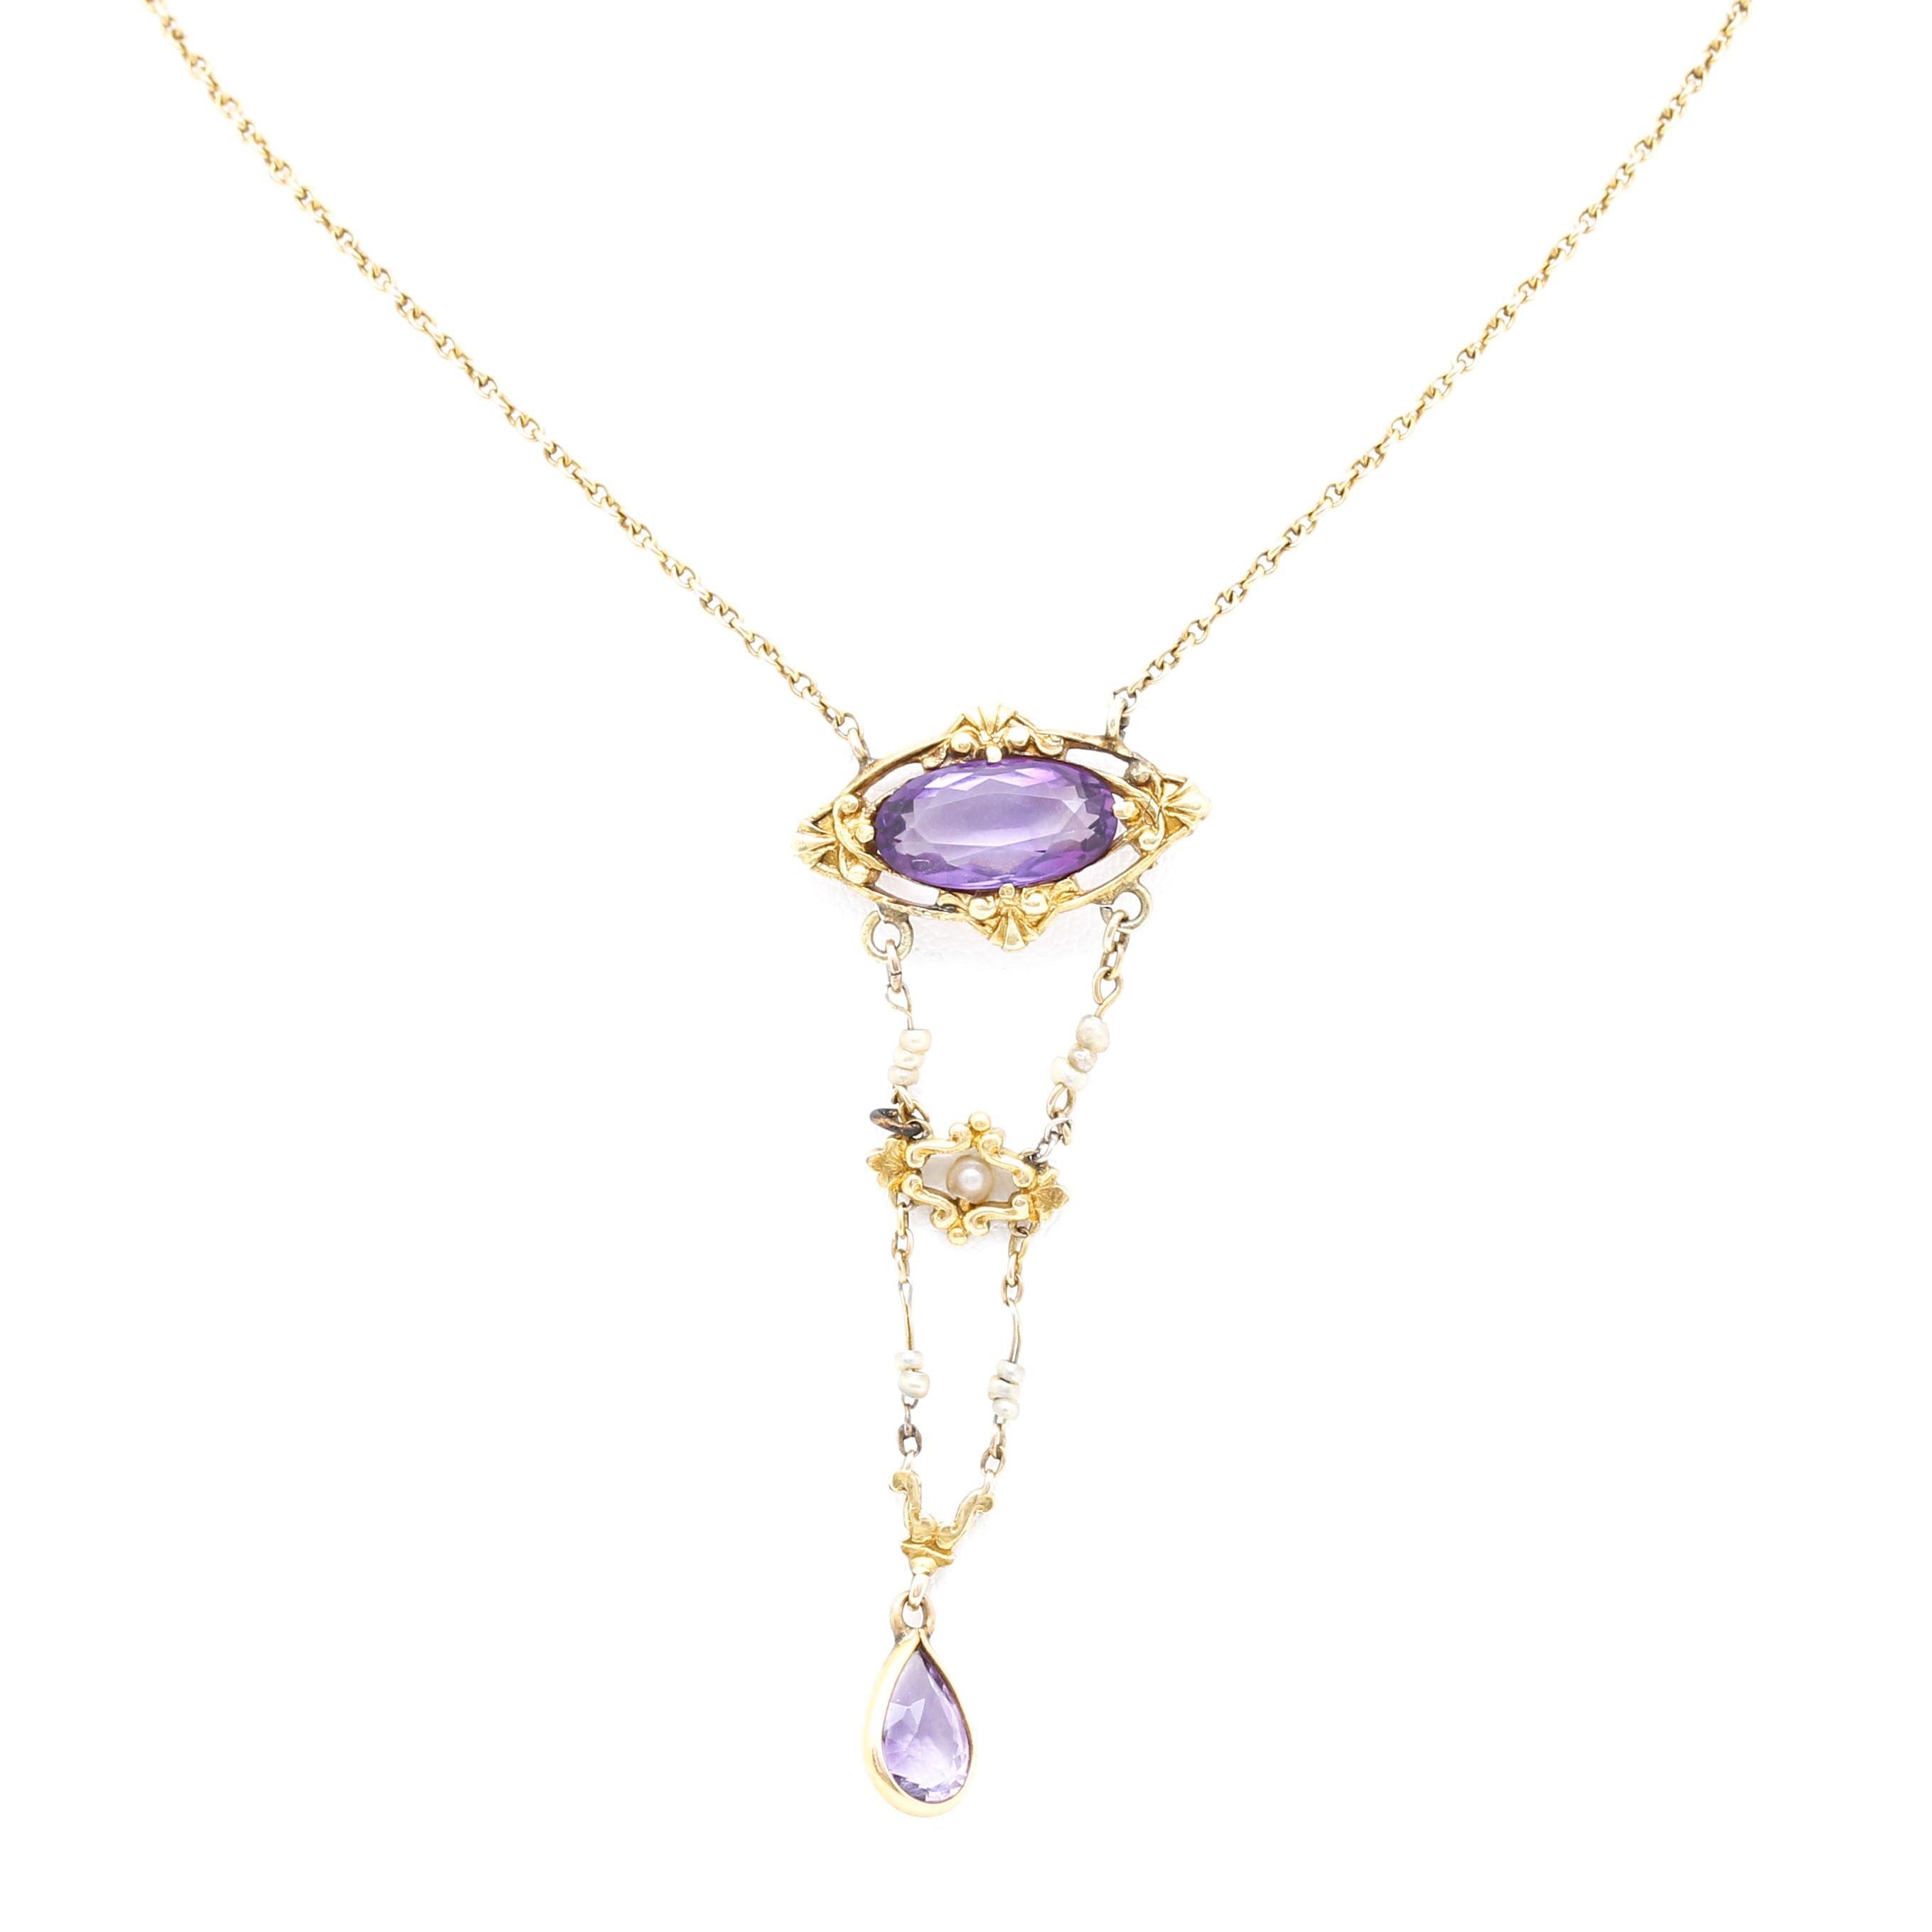 10K and 14K Yellow Gold Amethyst and Seed Pearl Linear Drop Pendant Necklace